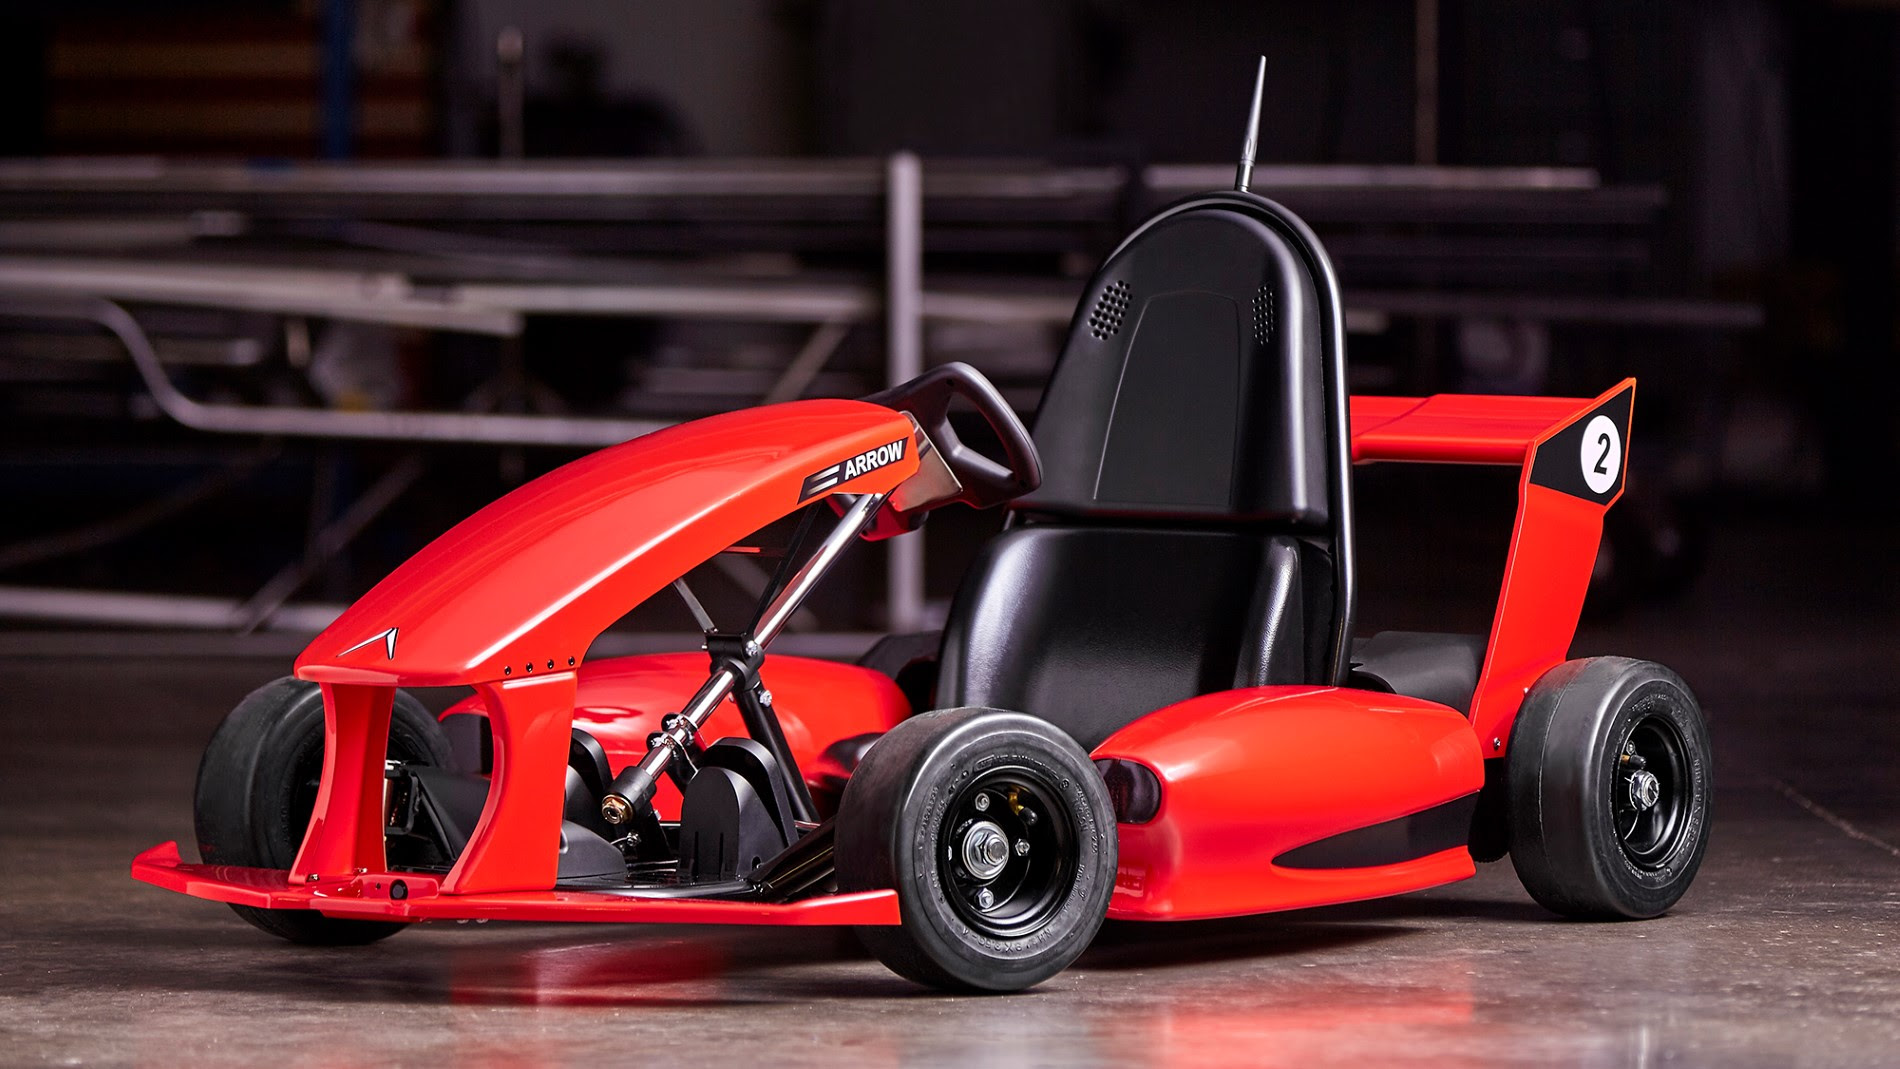 Actev Arrow The First Smart Kart For Kids